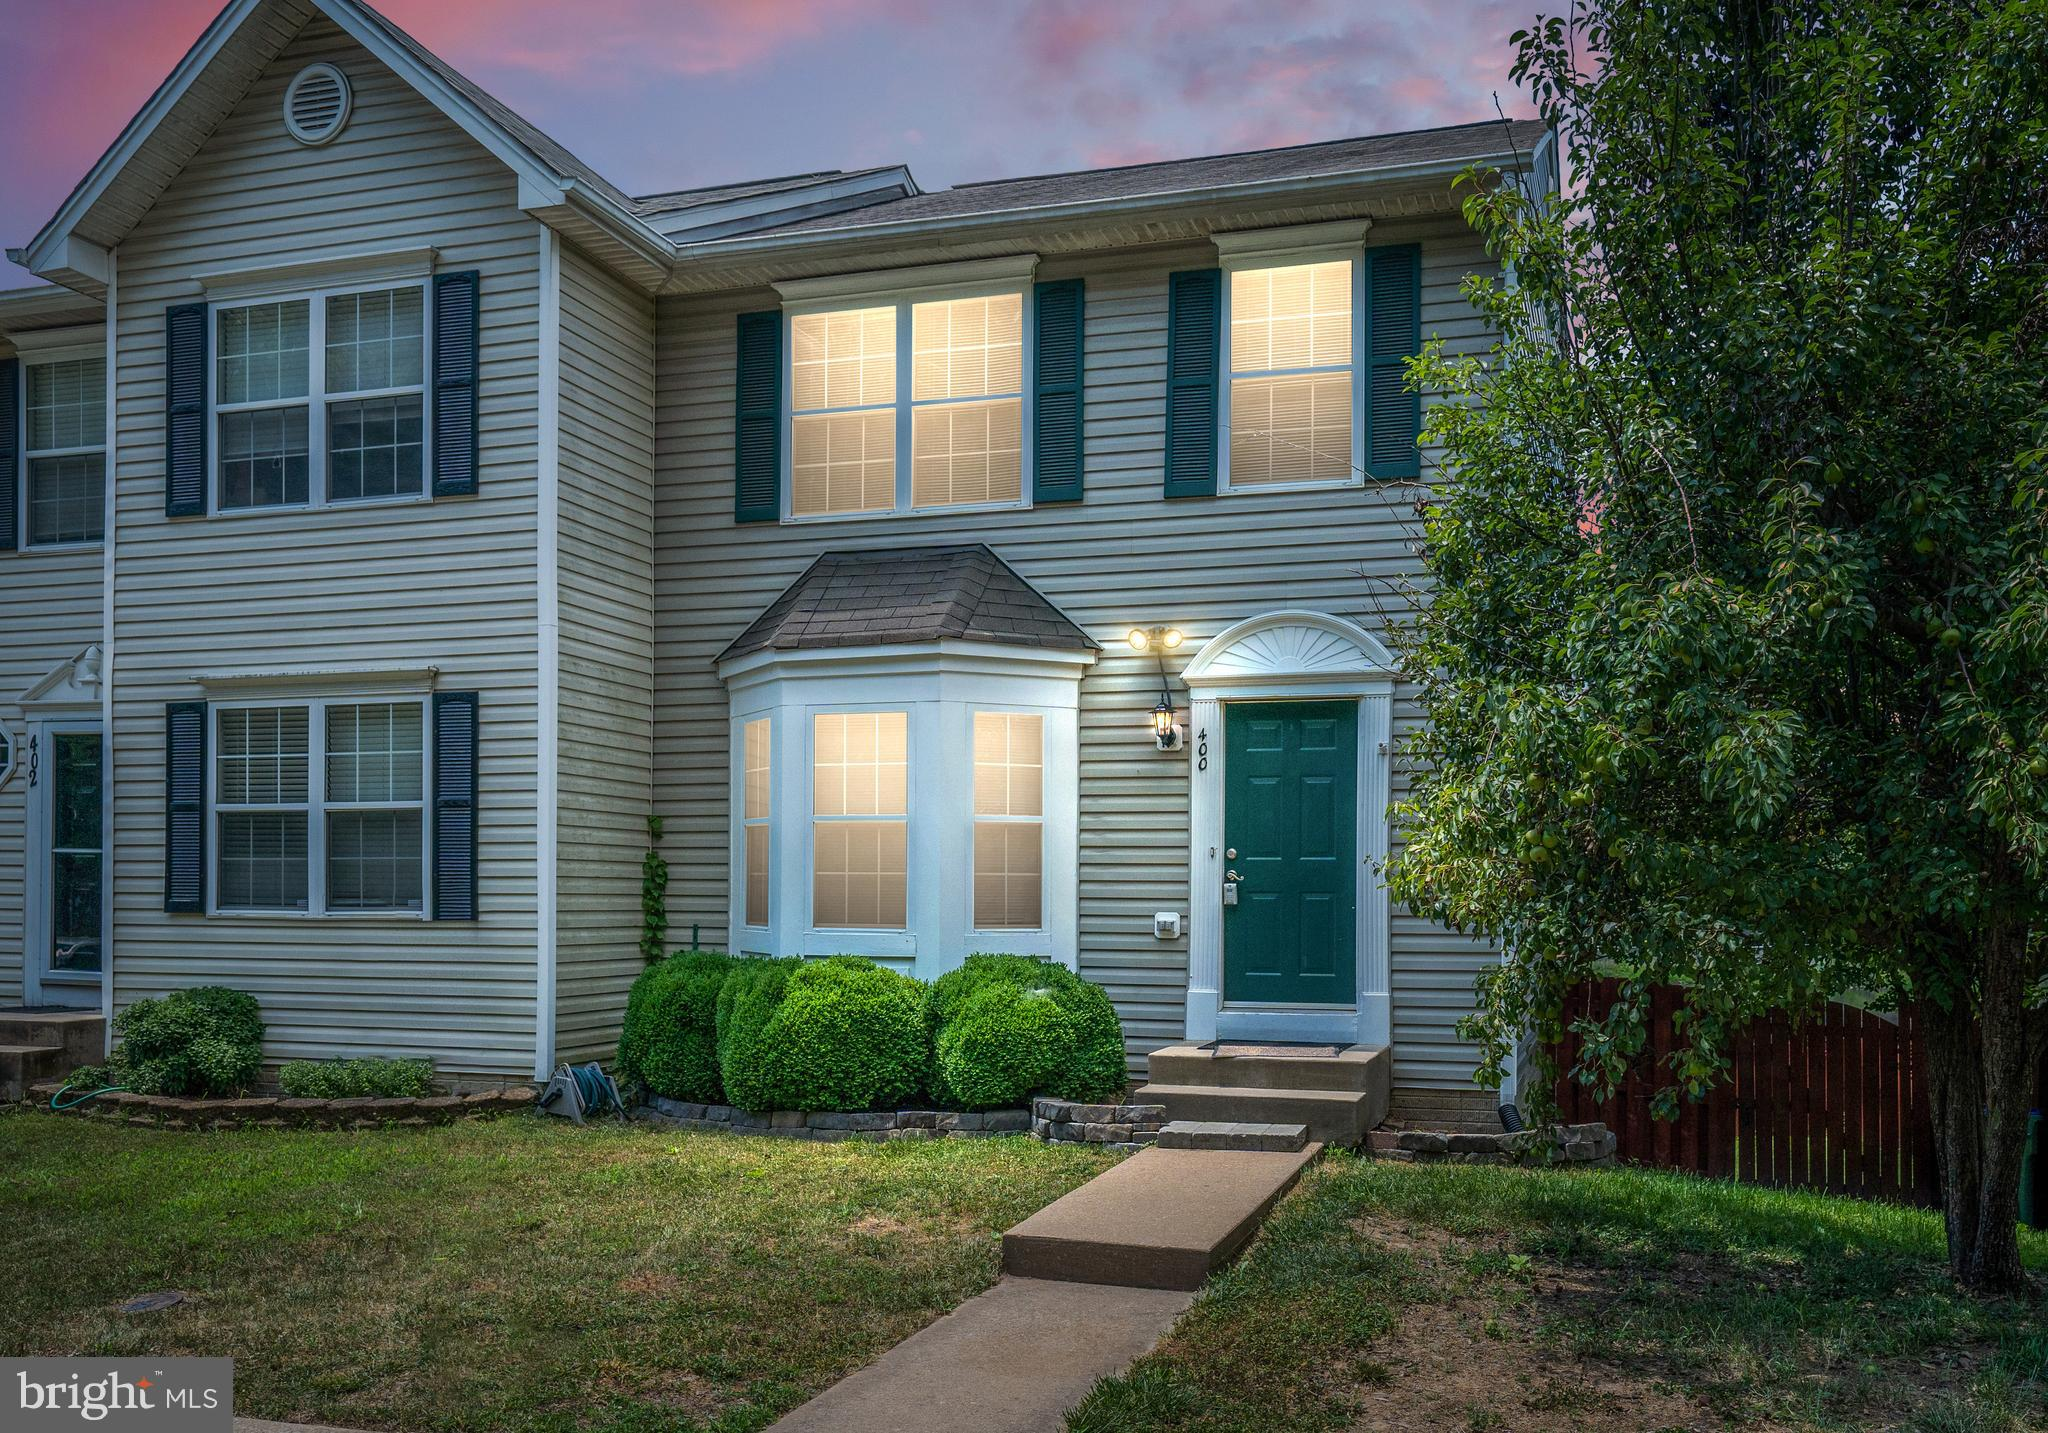 DON'T MISS THIS WELL MAINTAINED 3 LEVEL END UNIT TOWNHOME LOCATED IN THE DESIRABLE COMMUNITY OF STONE RIVER! BEAUTIFUL HARDWOOD FLOORS GREET YOU AS YOU ENTER THE FOYER AND LARGE LIVING ROOM. THE EAT-IN KITCHEN INCLUDES SS APPLIANCES, GRANITE COUNTERS AND A PANTRY.  THERE IS A LOVELY VIEW OF THE POND FROM THE DECK CONVENIENTLY LOCATED RIGHT OFF THE KITCHEN. KICK-BACK AS YOU ENJOY YOUR SUMMER EVENINGS GRILLING AND CHILLING OUT ON THE DECK!  OFFERING 3 BEDS AND 3 FULL BATHS W/ A HALF BATH THERE IS PLENTY OF ROOM FOR EVERYONE! THE MASTER BEDROOM HAS A LARGE WALK-IN CLOSET AND MASTER BATH WITH A SOAKING TUB AND SEPARATE SHOWER. THE FULLY FINISHED BASEMENT IS SO SPACIOUS AND READY TO ACCOMMODATE YOUR VISION FOR AN ADDITIONAL FAMILY ROOM, PLAYROOM, OR OFFICE. WASHER & DRYER CONVEY. FULLY FENCED BACKYARD WITH A SHED. STONE RIVER COMMUNITY HAS PLAYGROUNDS, POOL, AND AMPLE PARKING. CLOSE TO I-95,RT 1, QUANTICO.